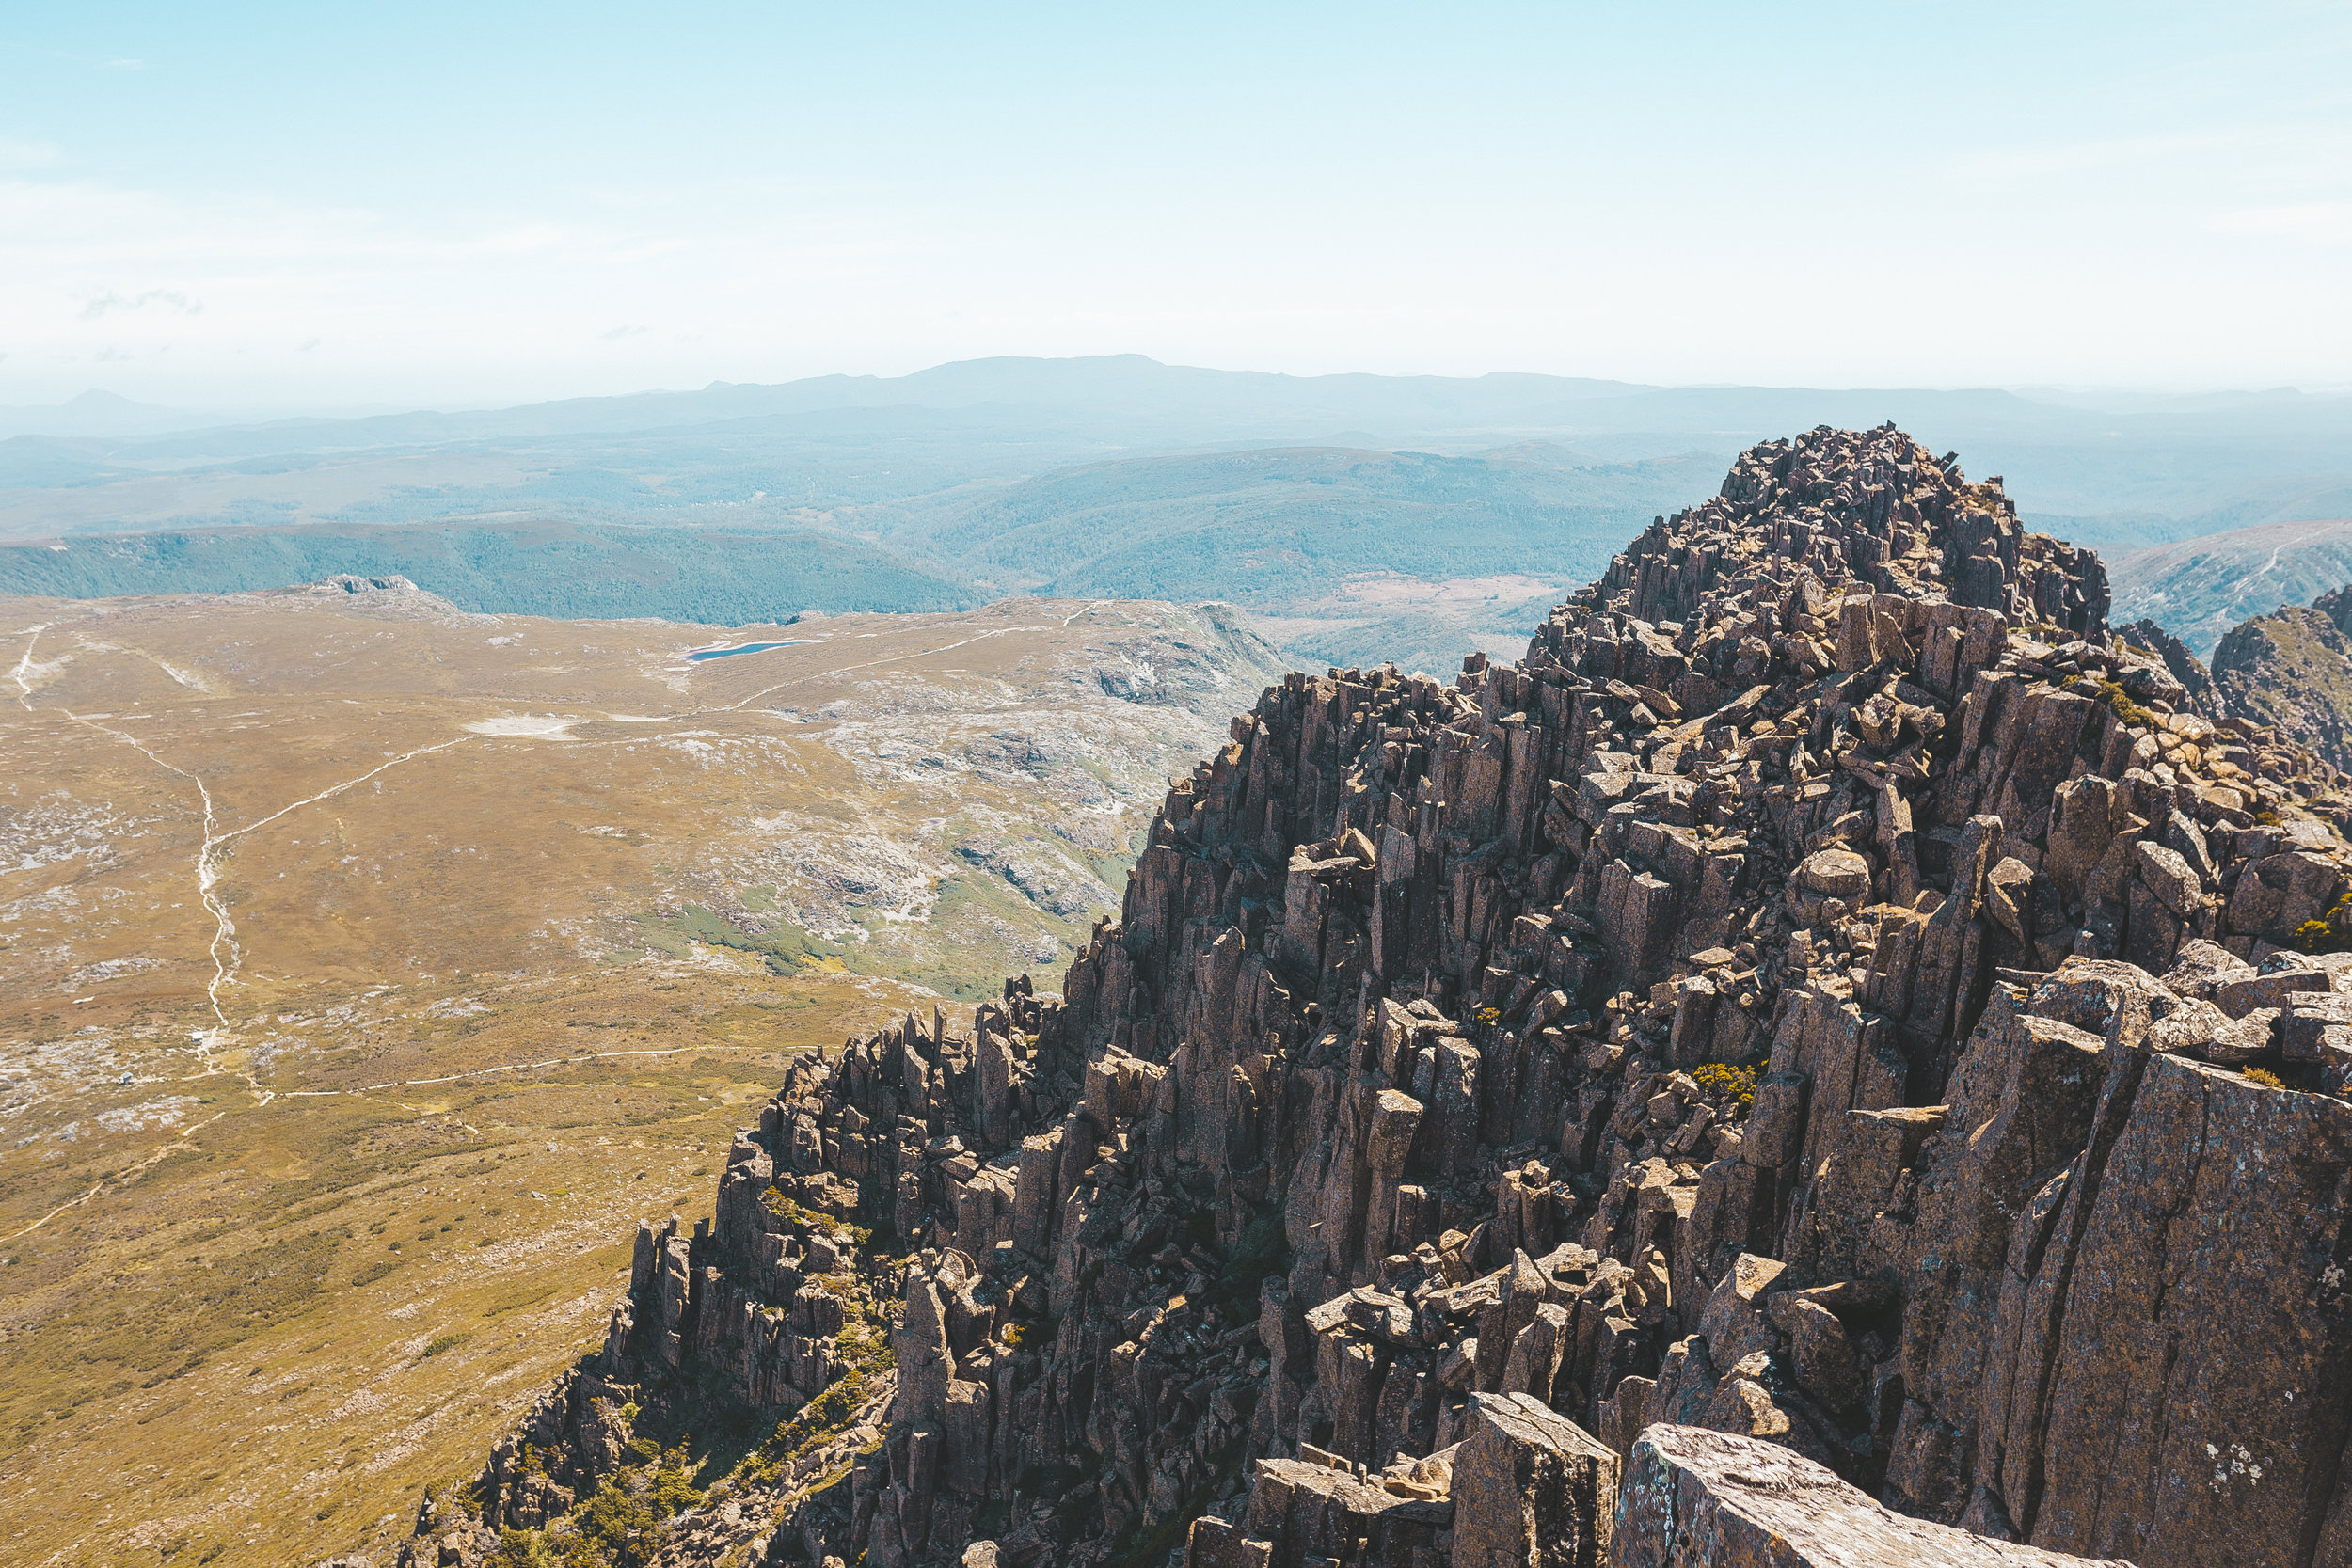 View from the summit of Cradle Mountain